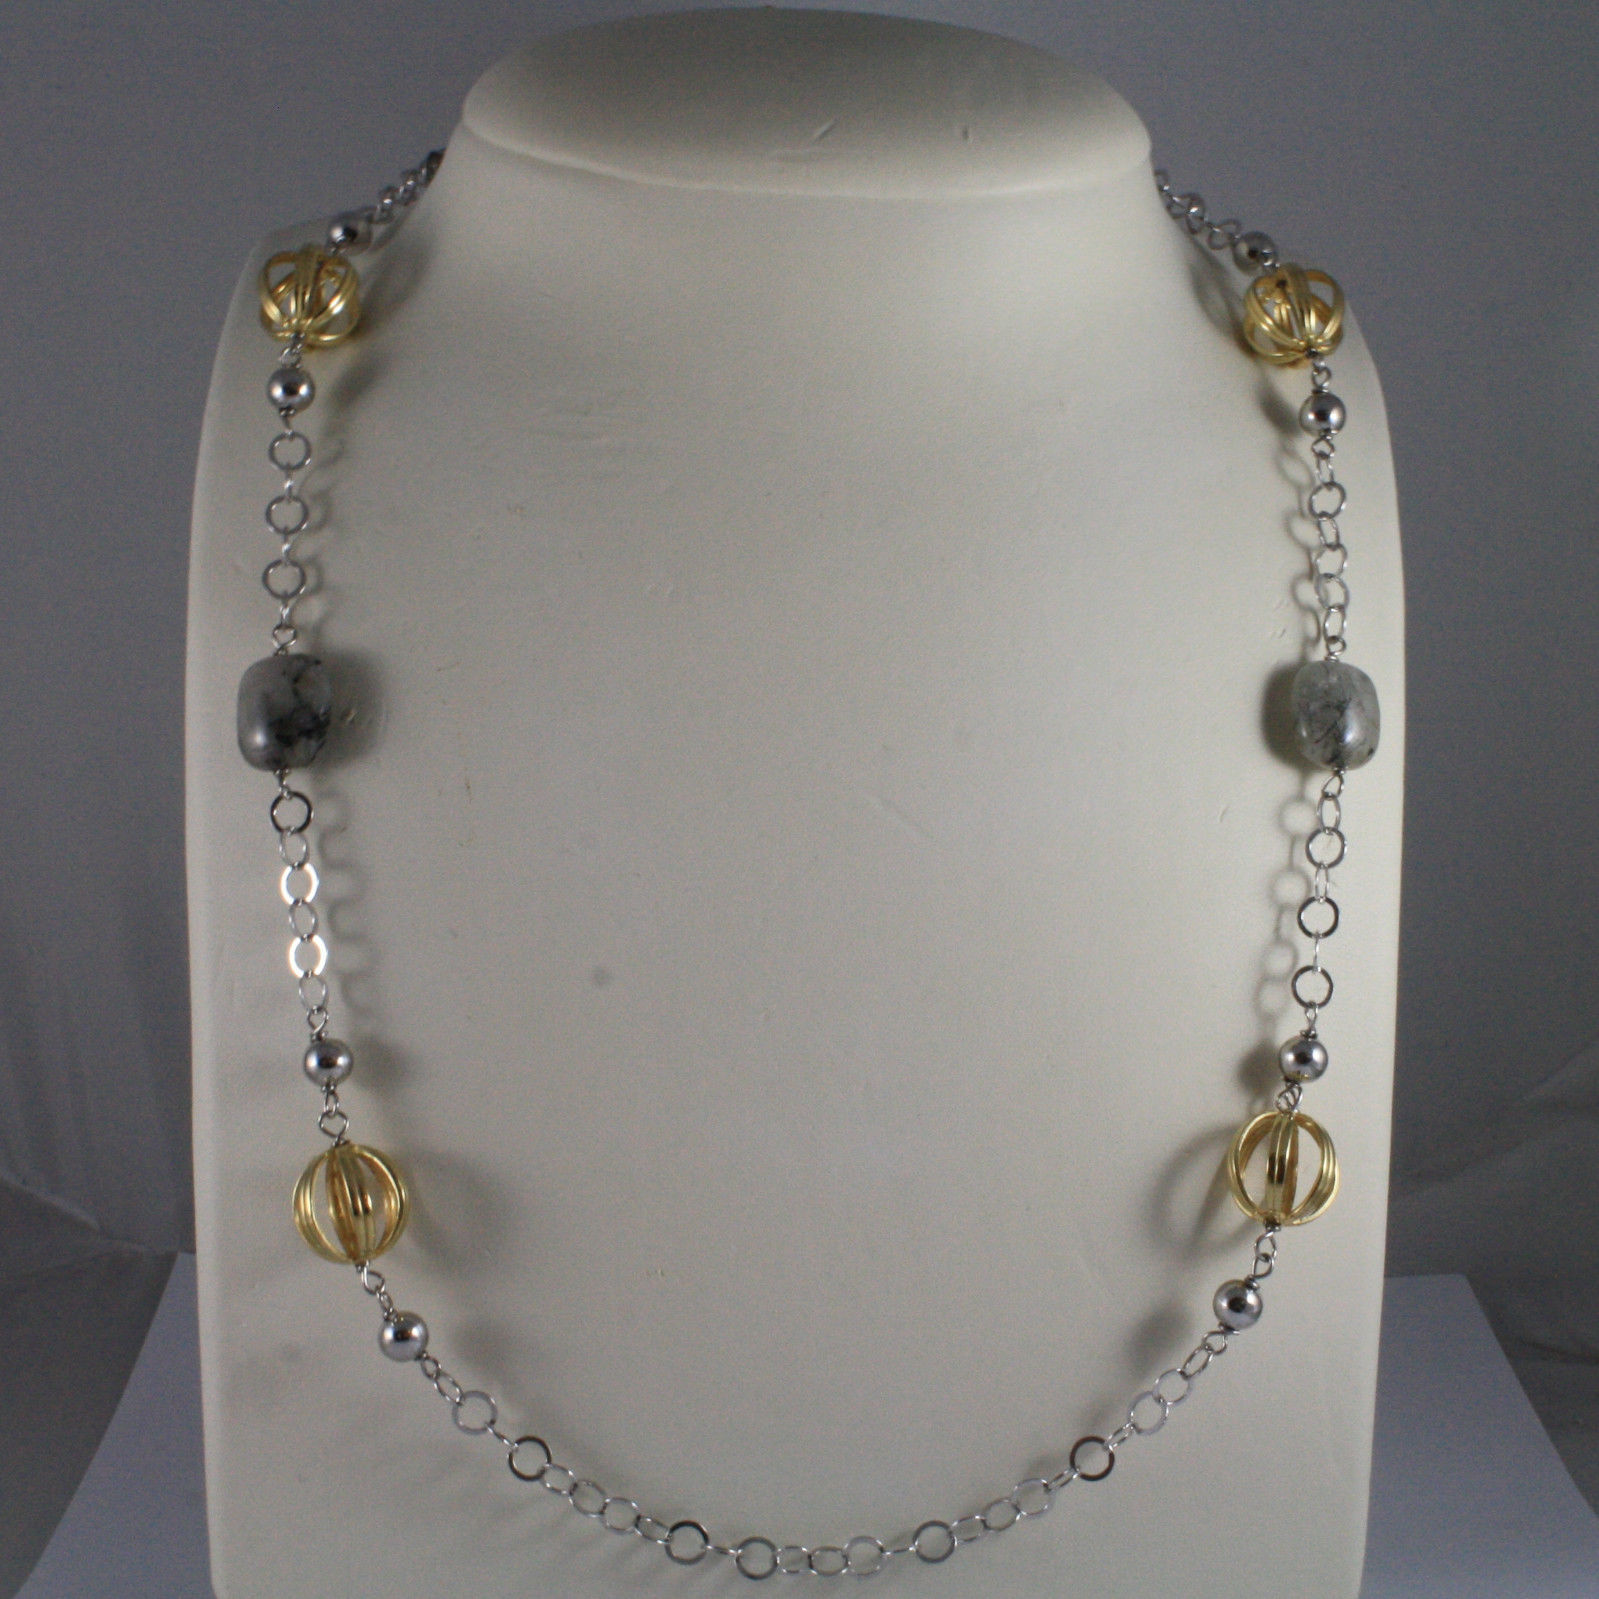 .925 SILVER RHODIUM NECKLACE WITH GRAY QUARTZ AND YELLOW GOLD PLATED SPHERES